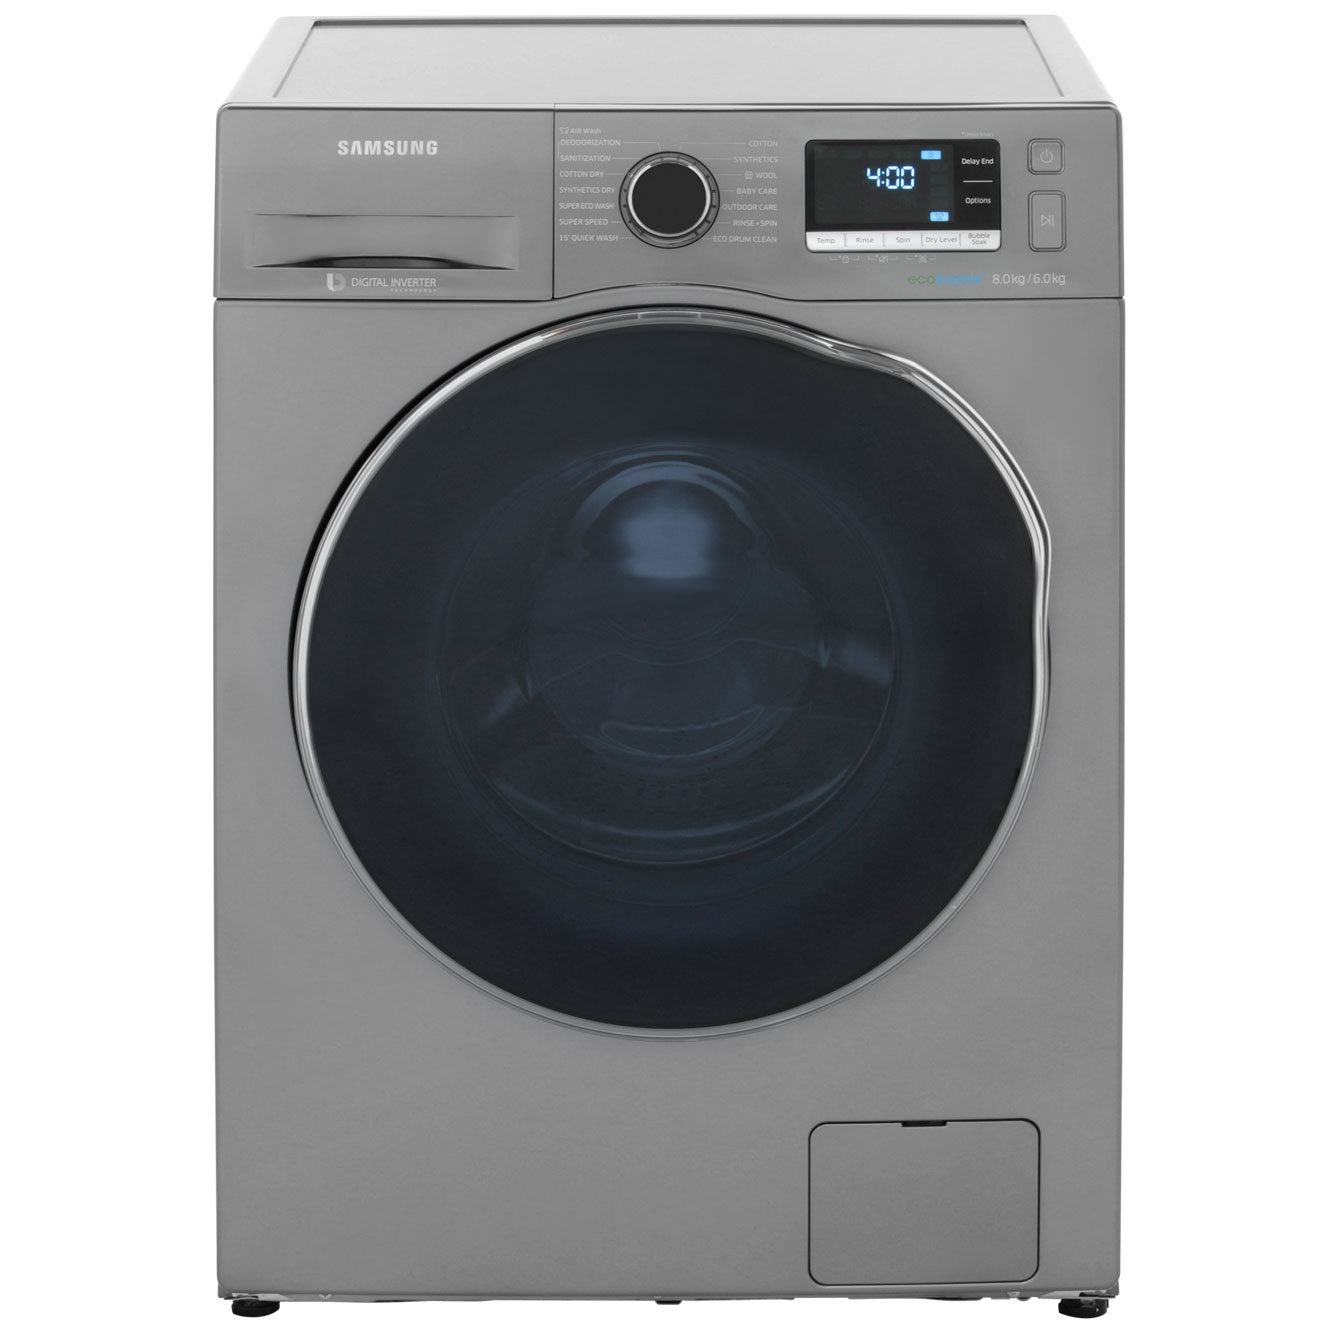 Samsung Ecobubble WD80J6410AX 8Kg / 6Kg Washer Dryer with 1400 rpm - Stainless Steel Look